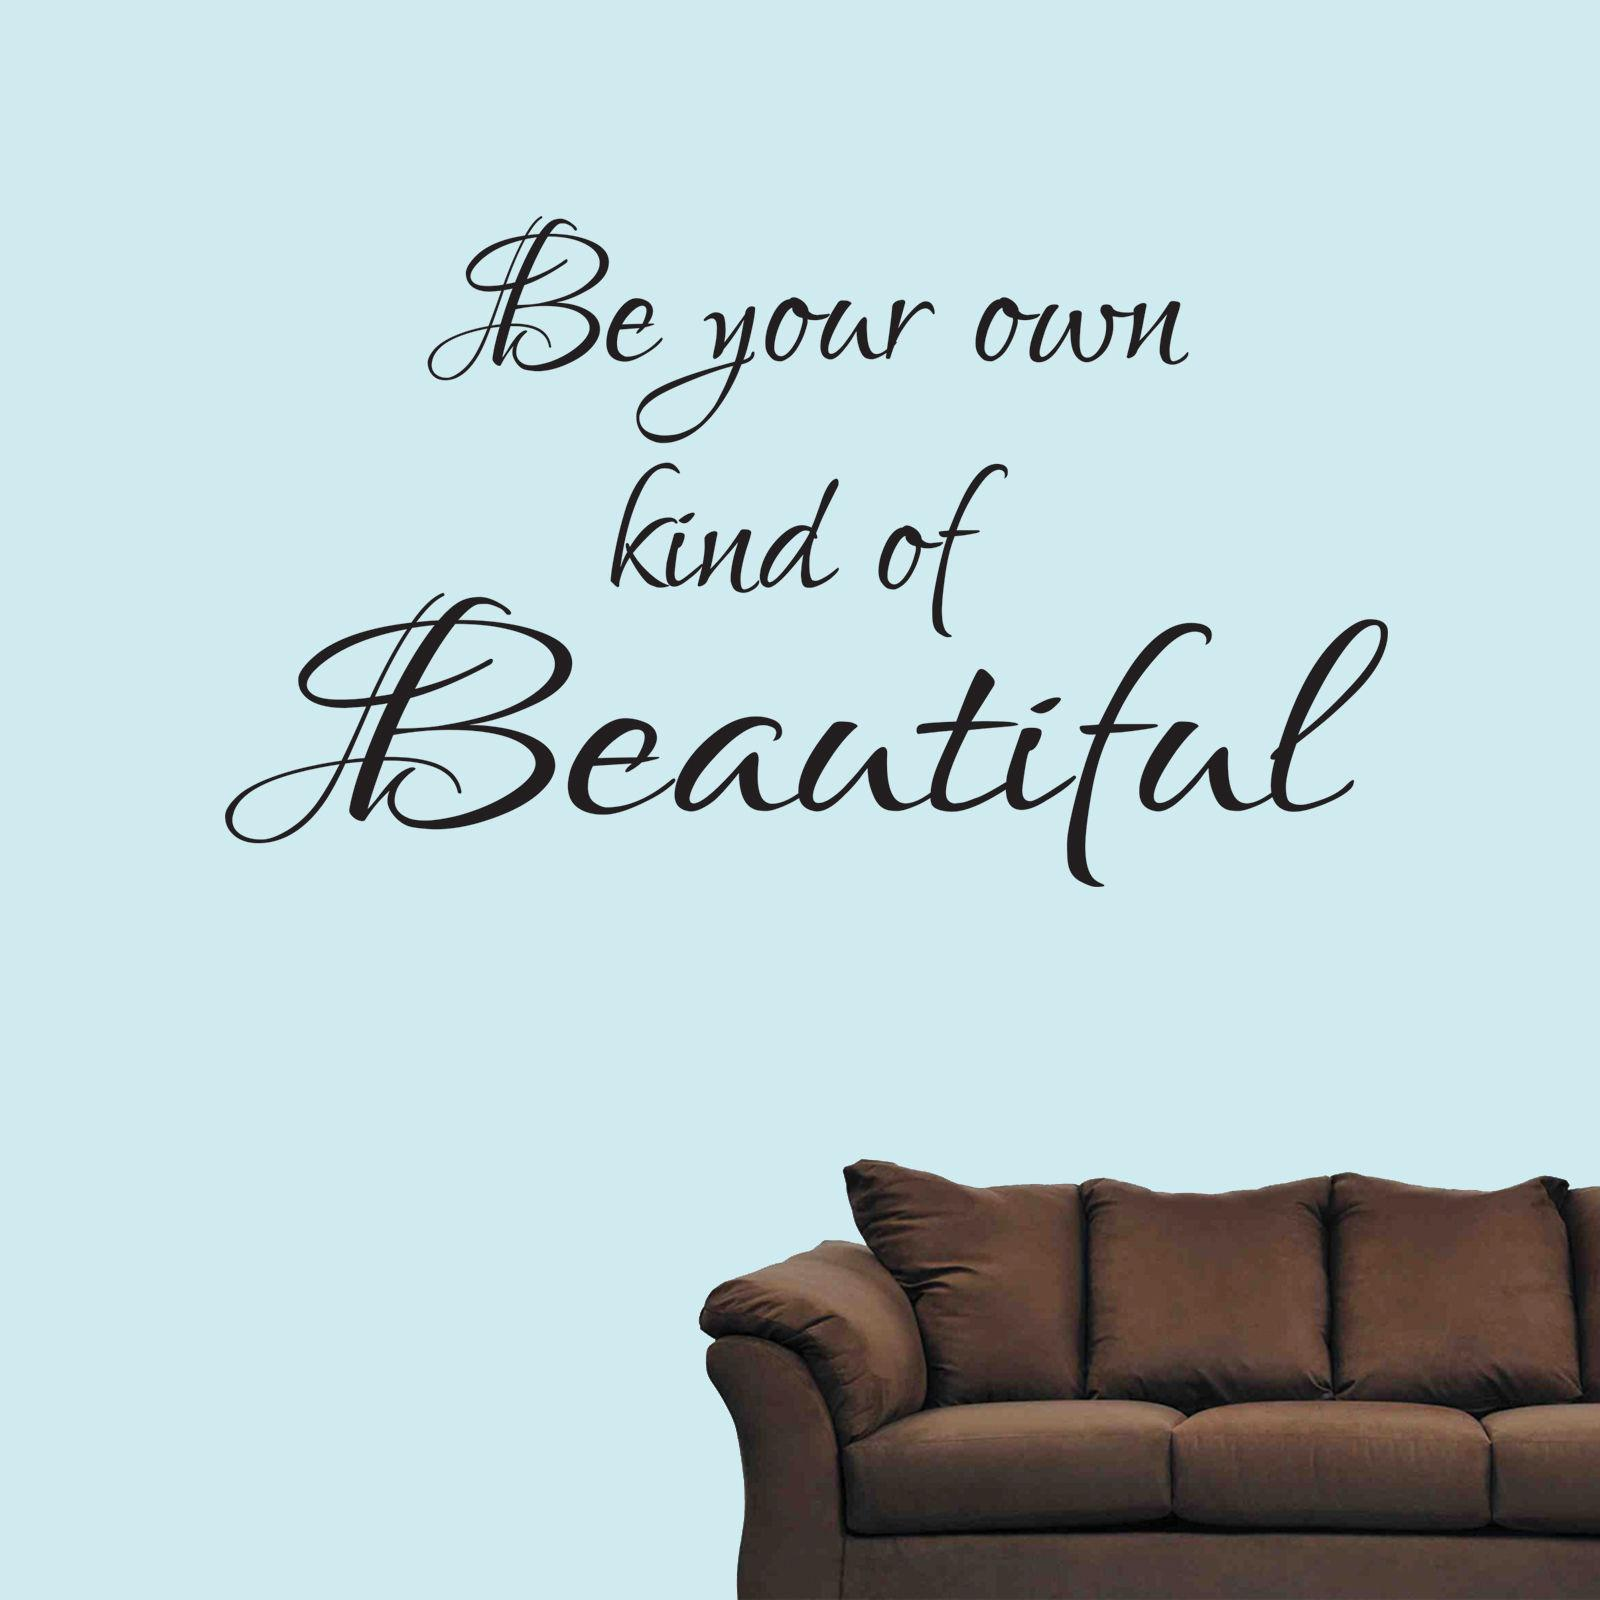 Be your own kind of beautiful wall art sticker inspirational quote vinyl decal bedroom wall art tattoos wall decals decor wall decals design from xymy757